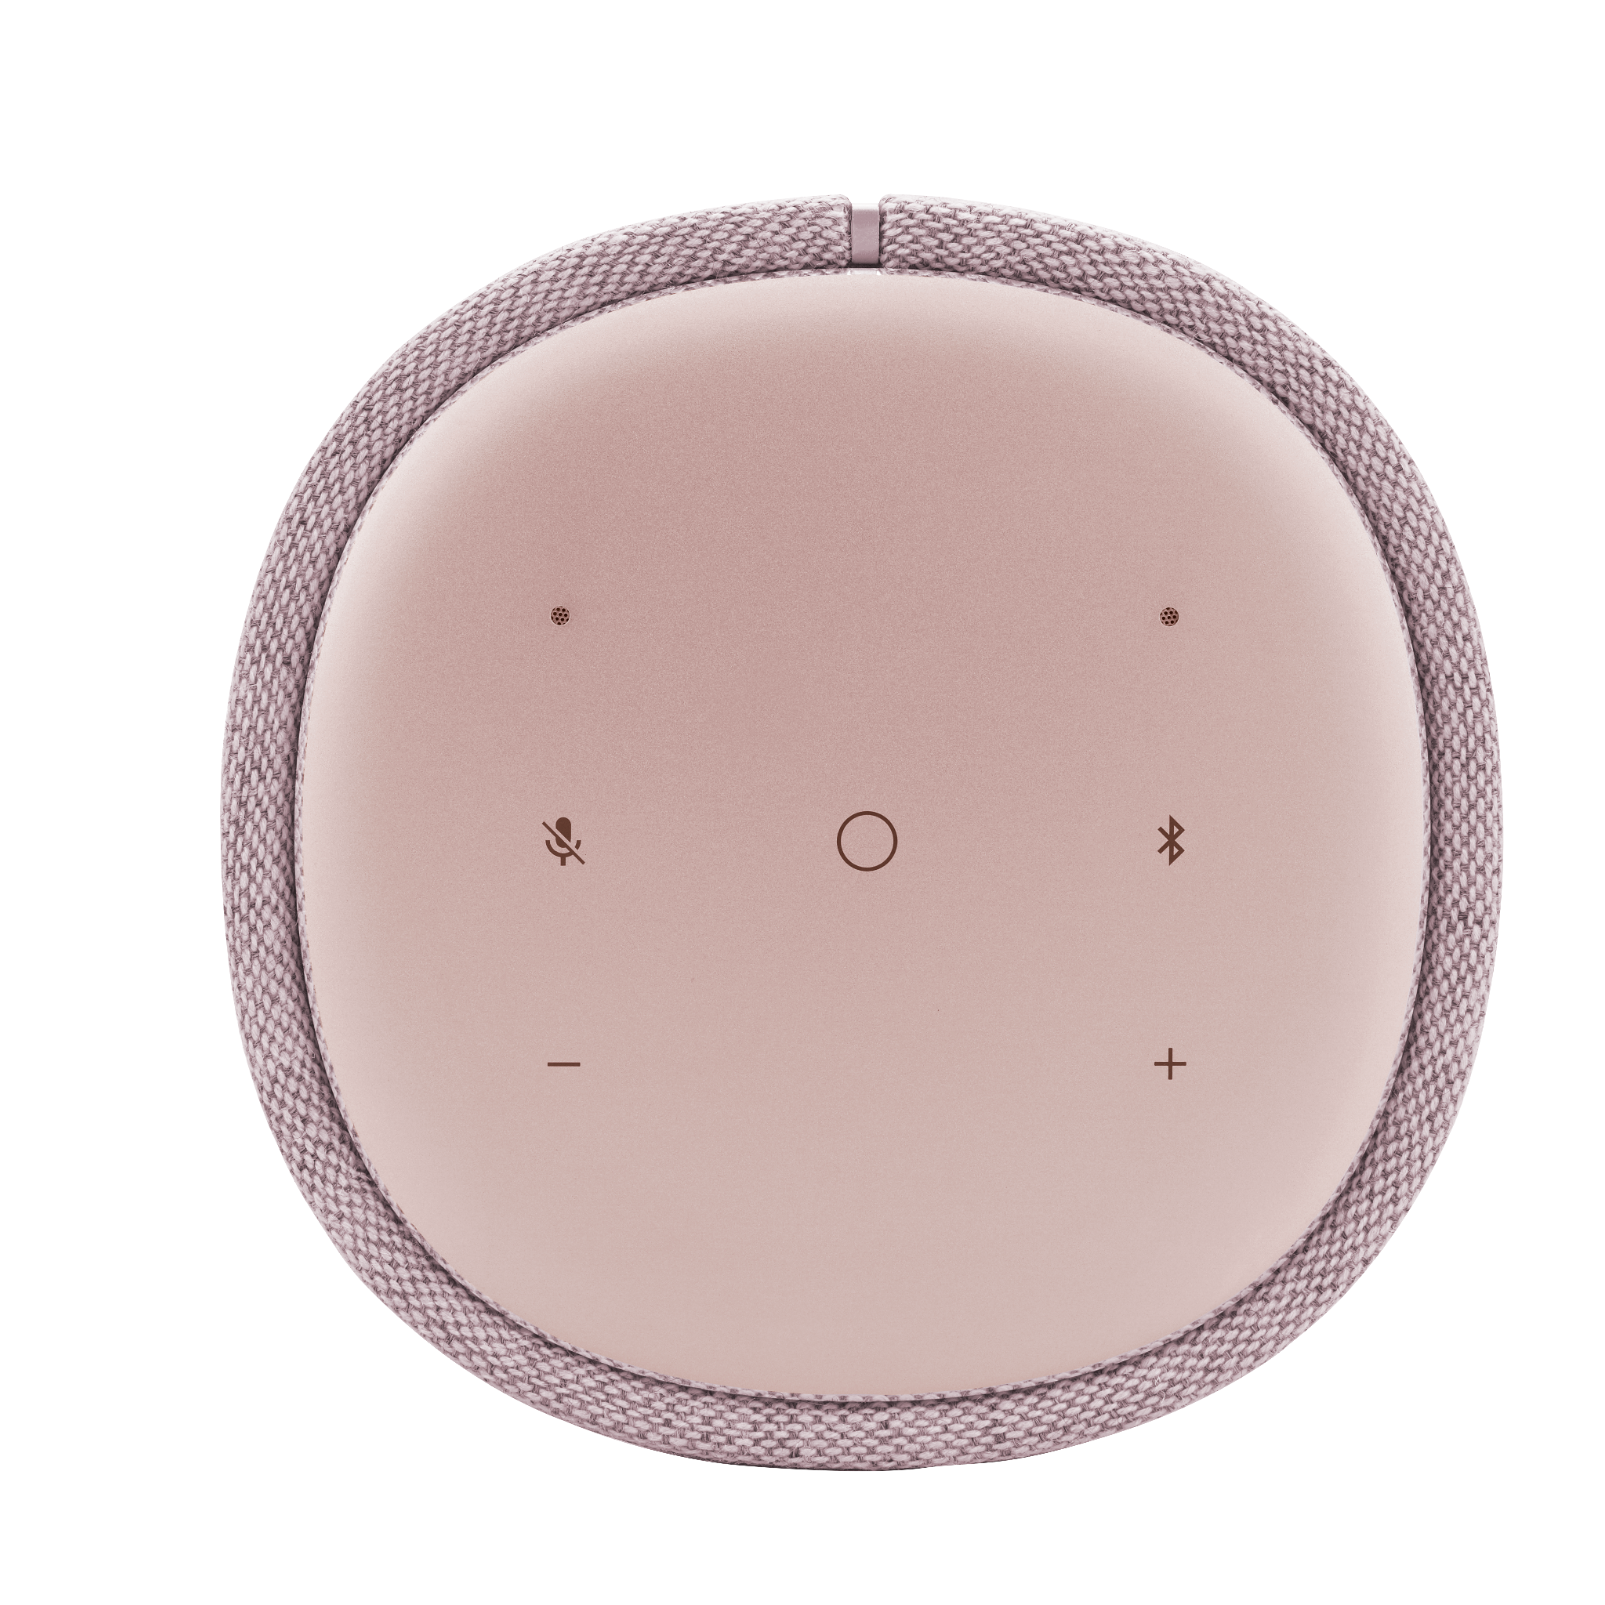 Harman Kardon Citation One MKII - Pink - All-in-one smart speaker with room-filling sound - Detailshot 2